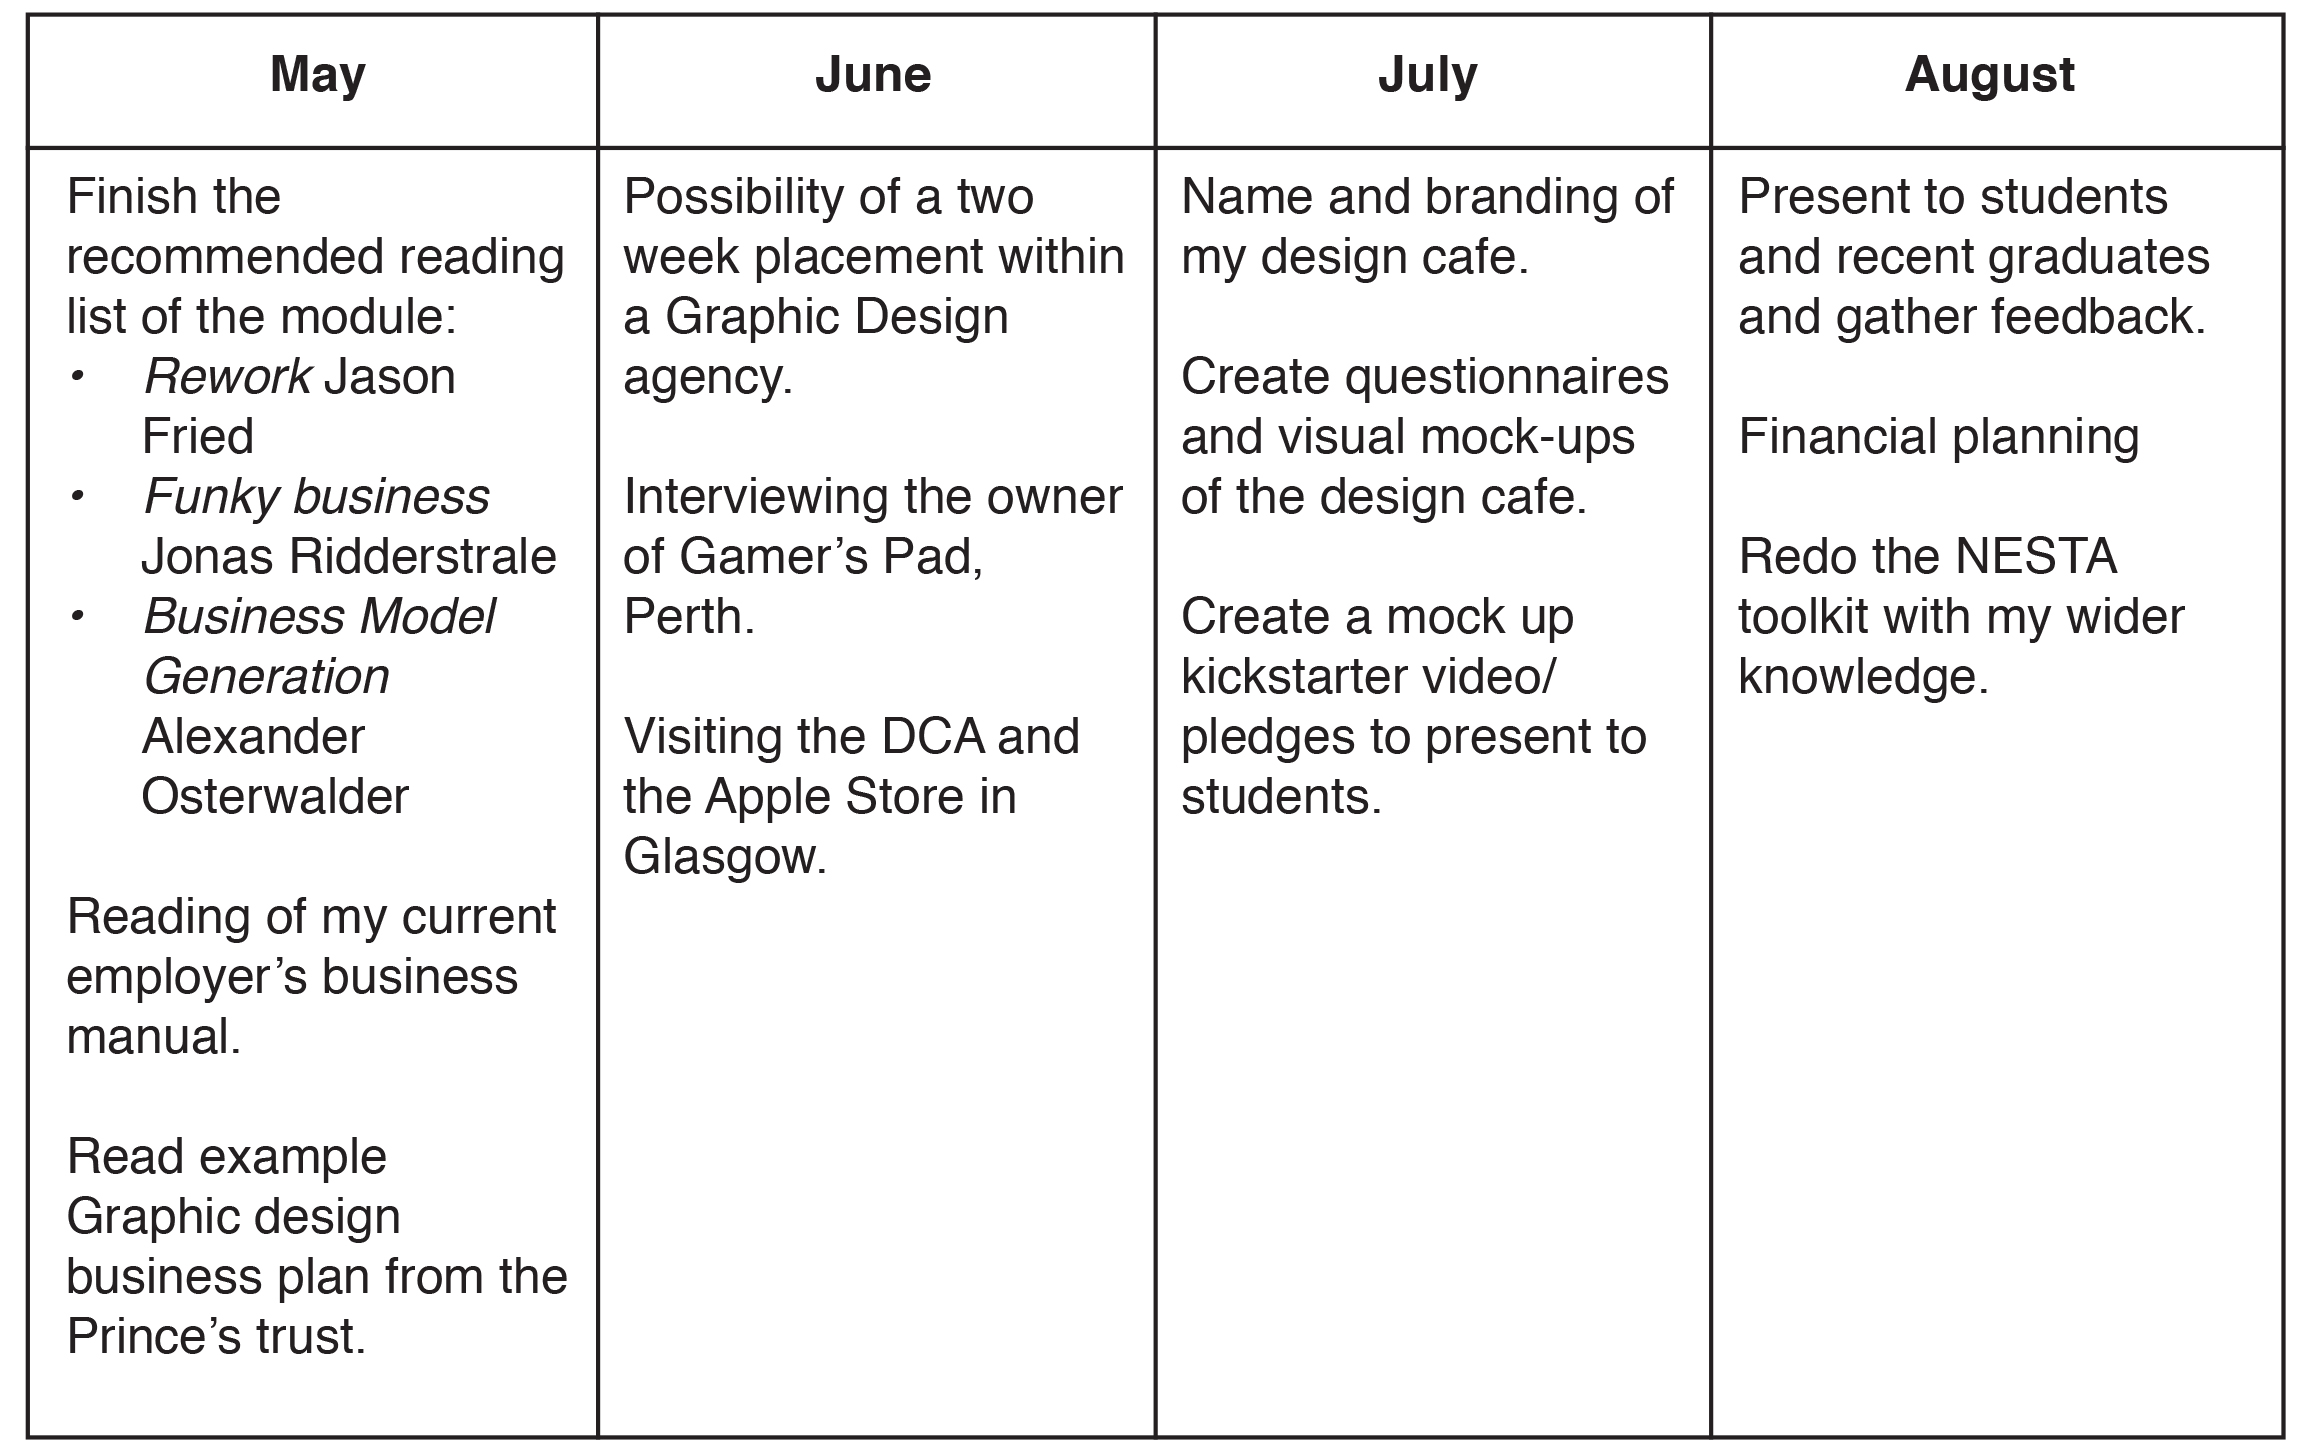 Dissertation timetable proposal